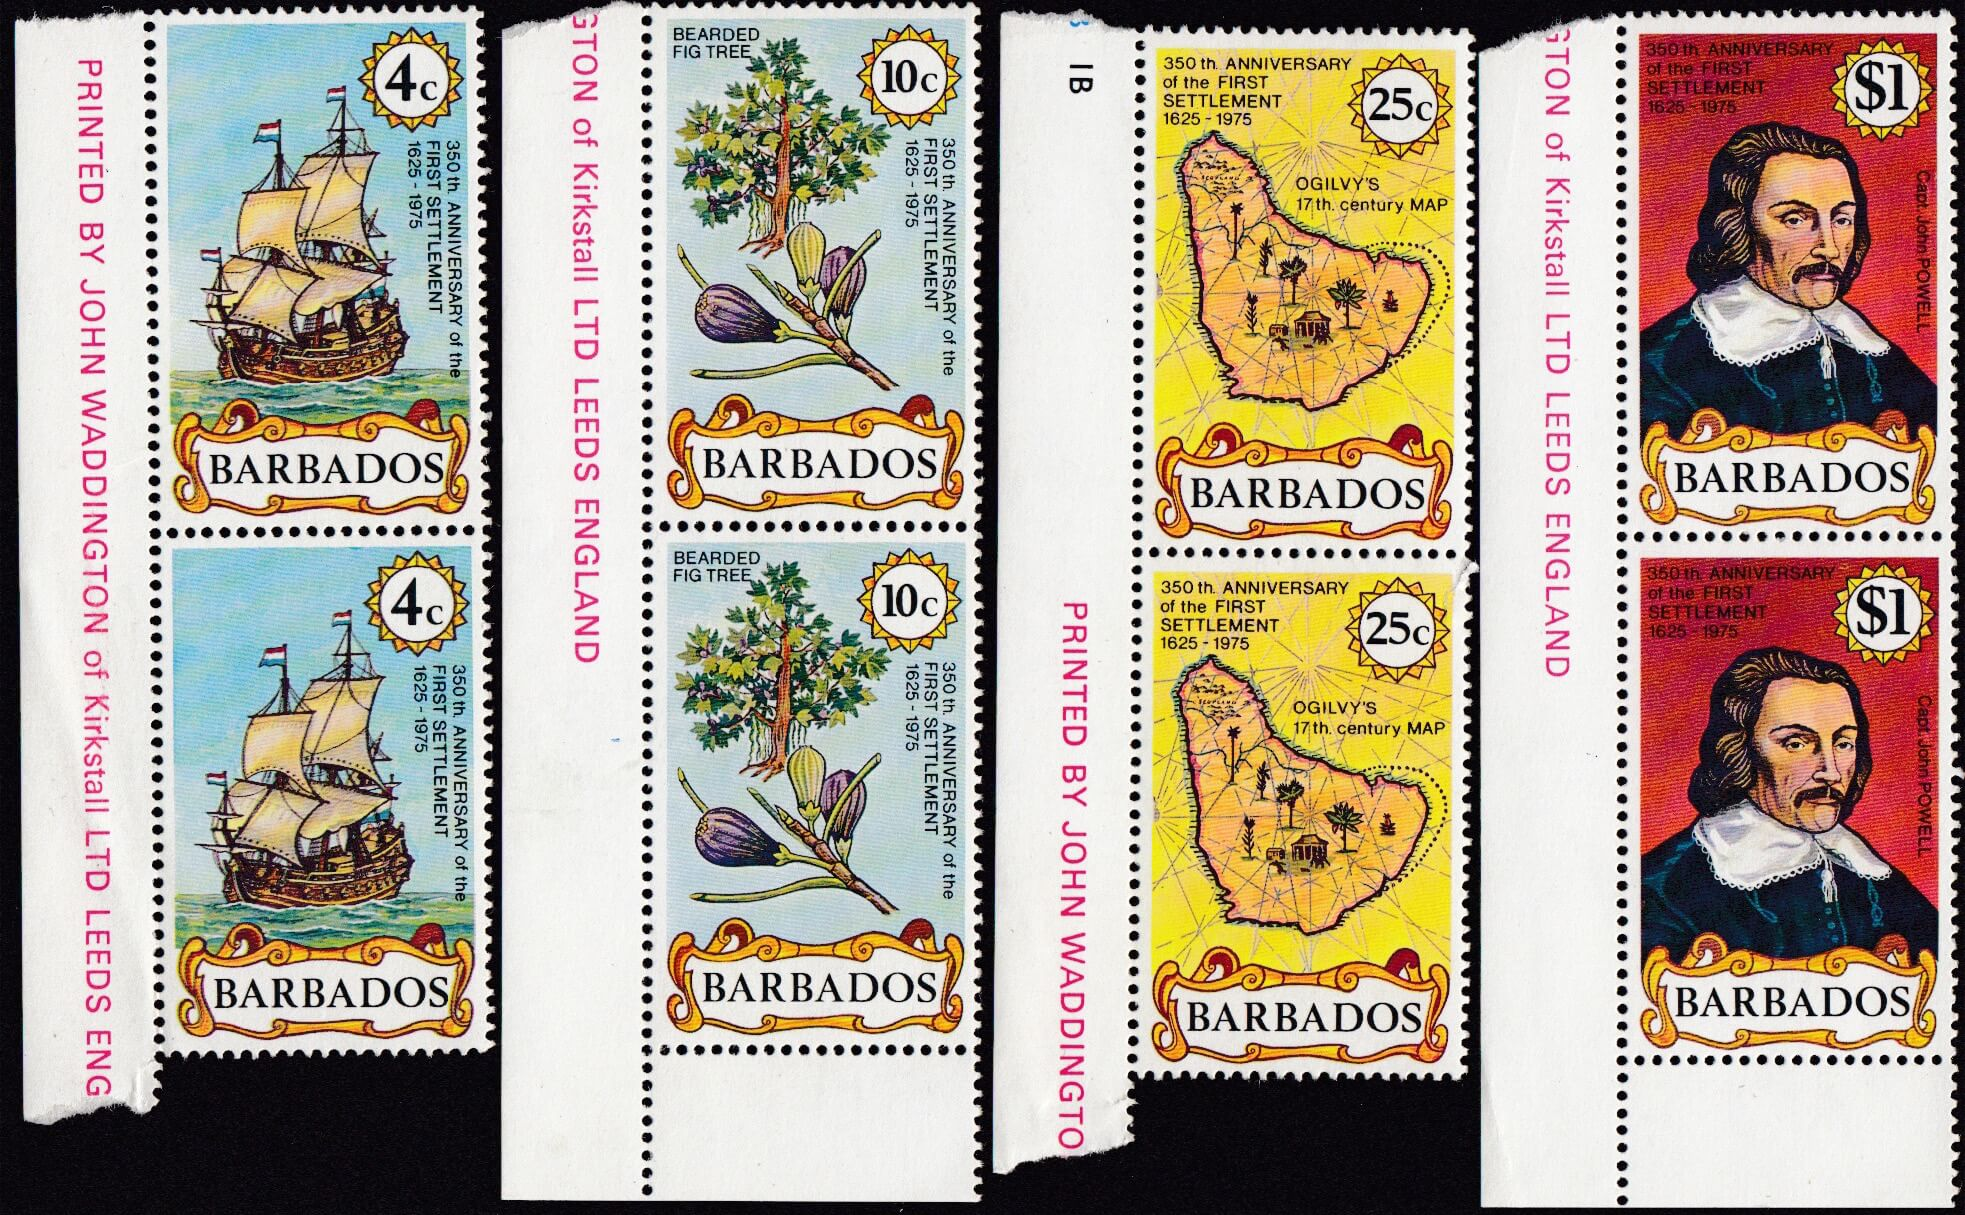 Barbados 538-541   350th Anniversary of First Settlement